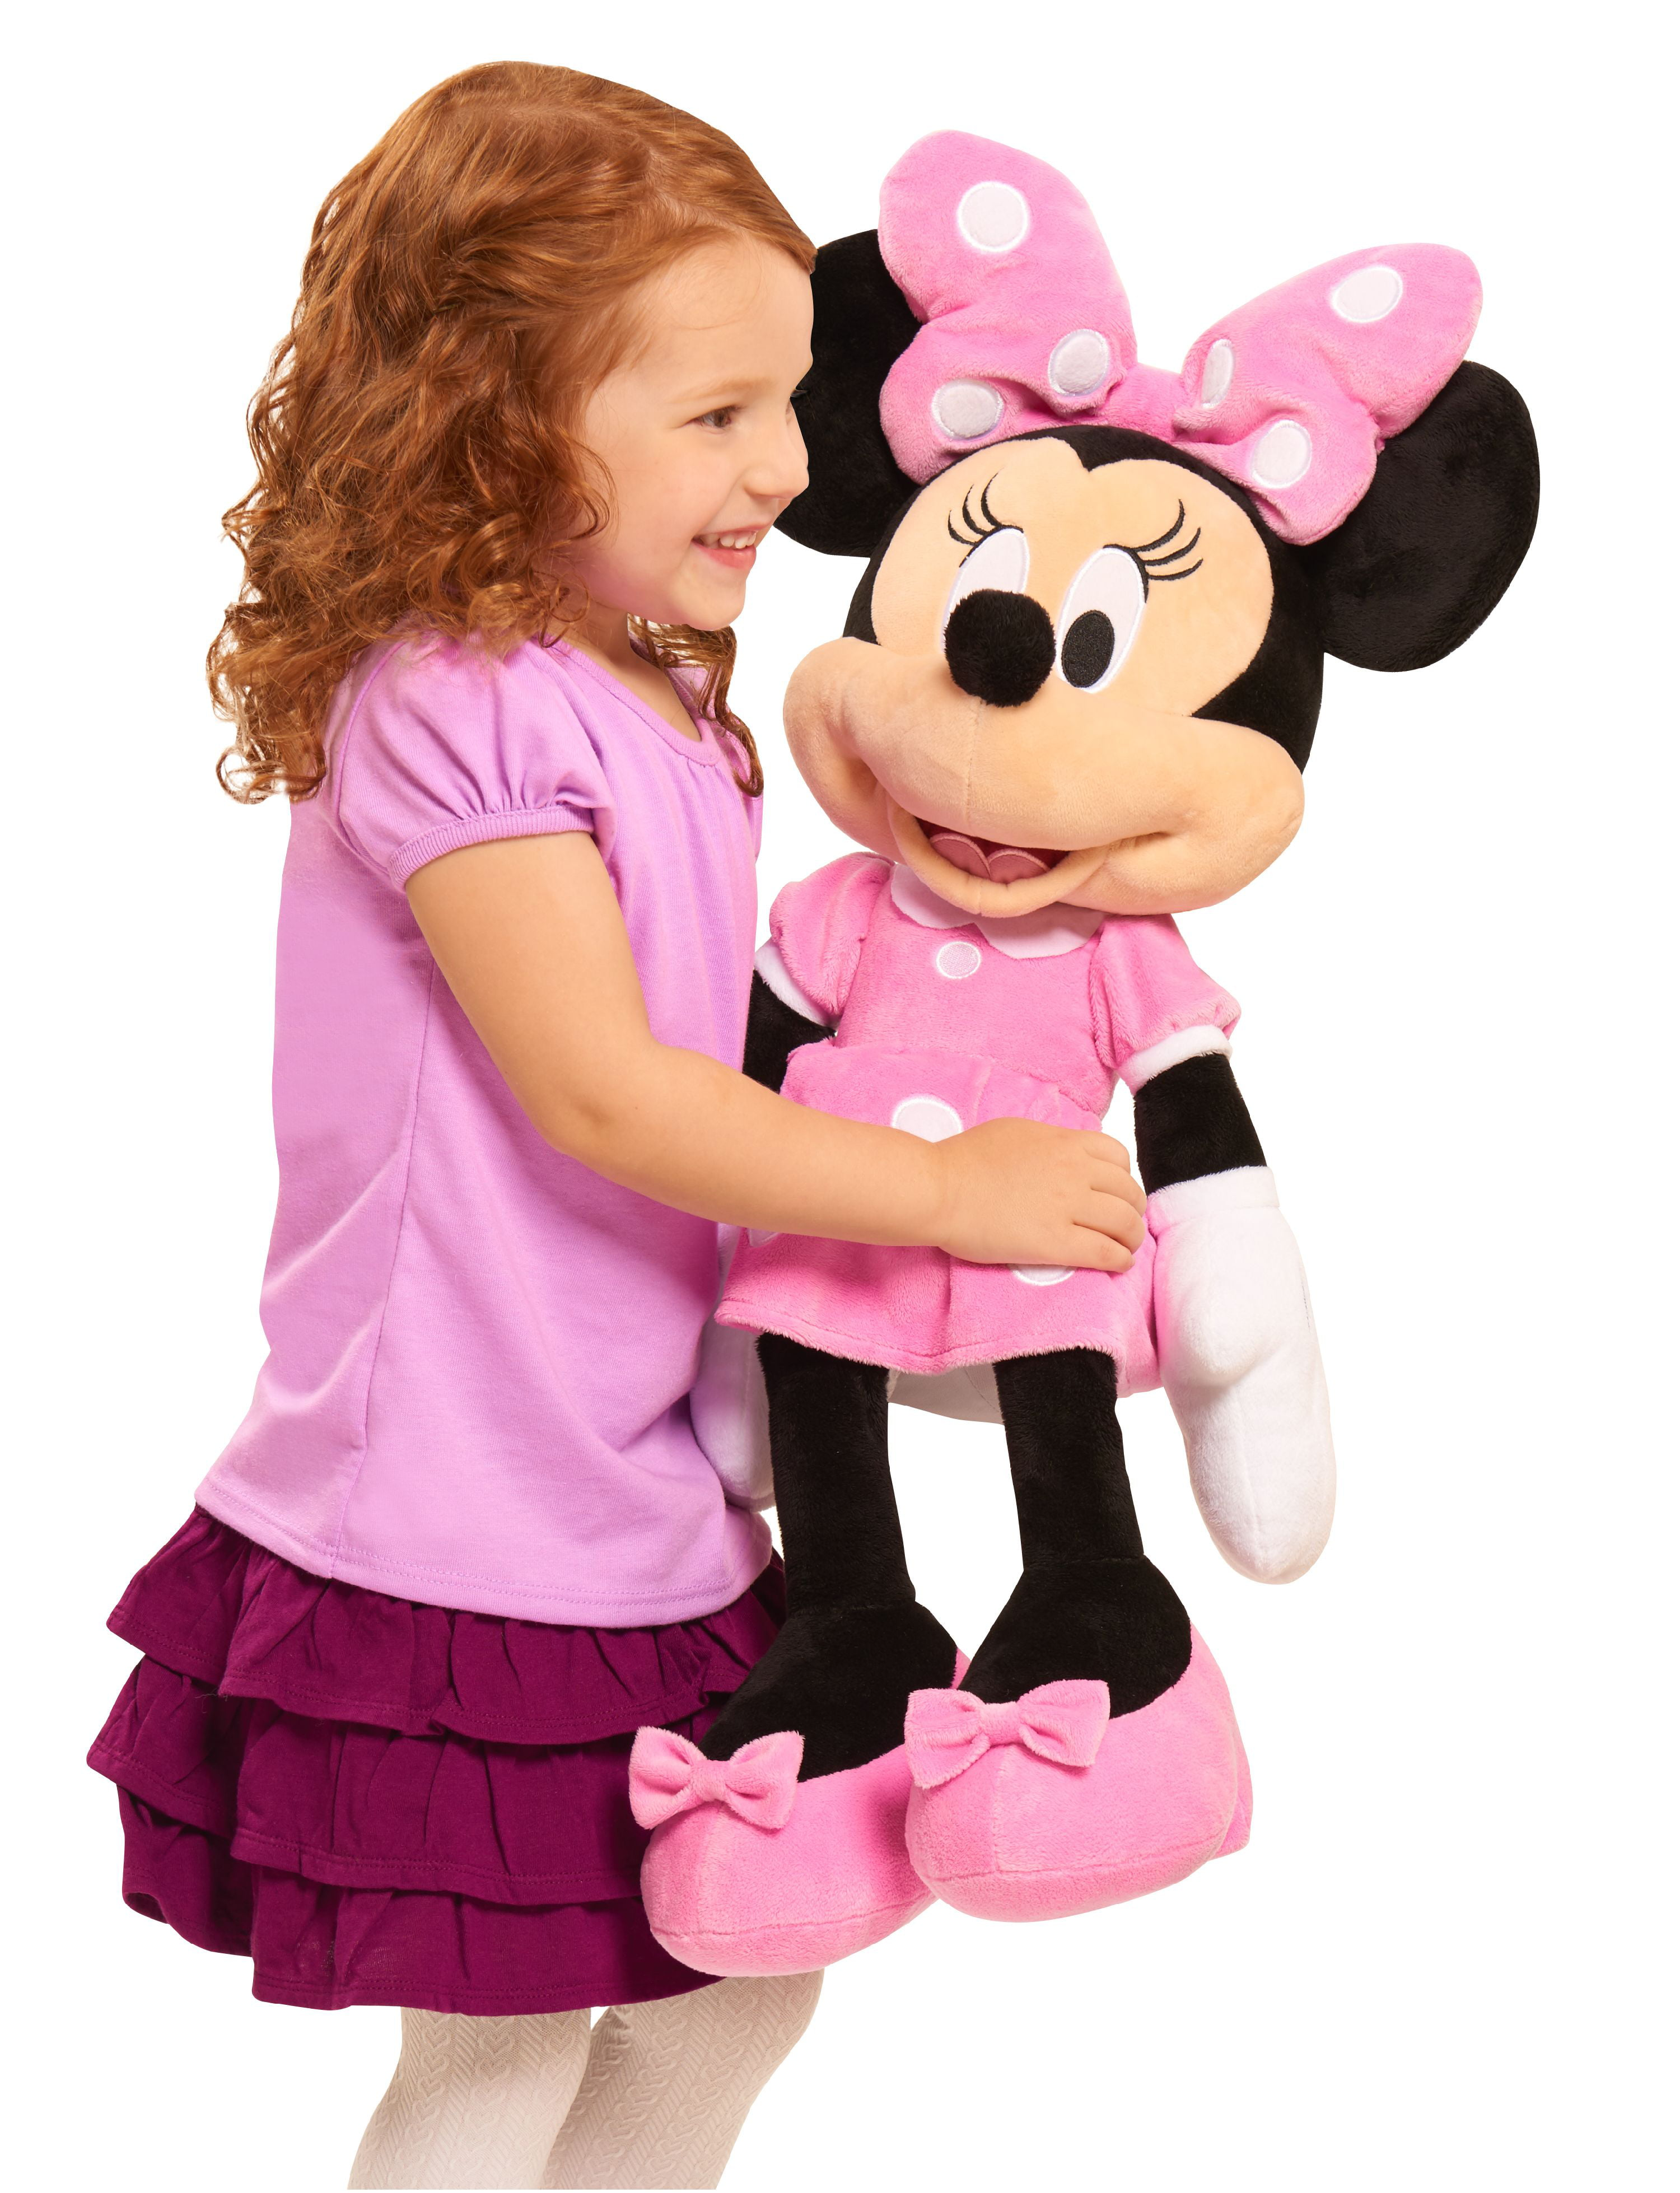 Disney Minnie Mouse Large Plush by Just Play